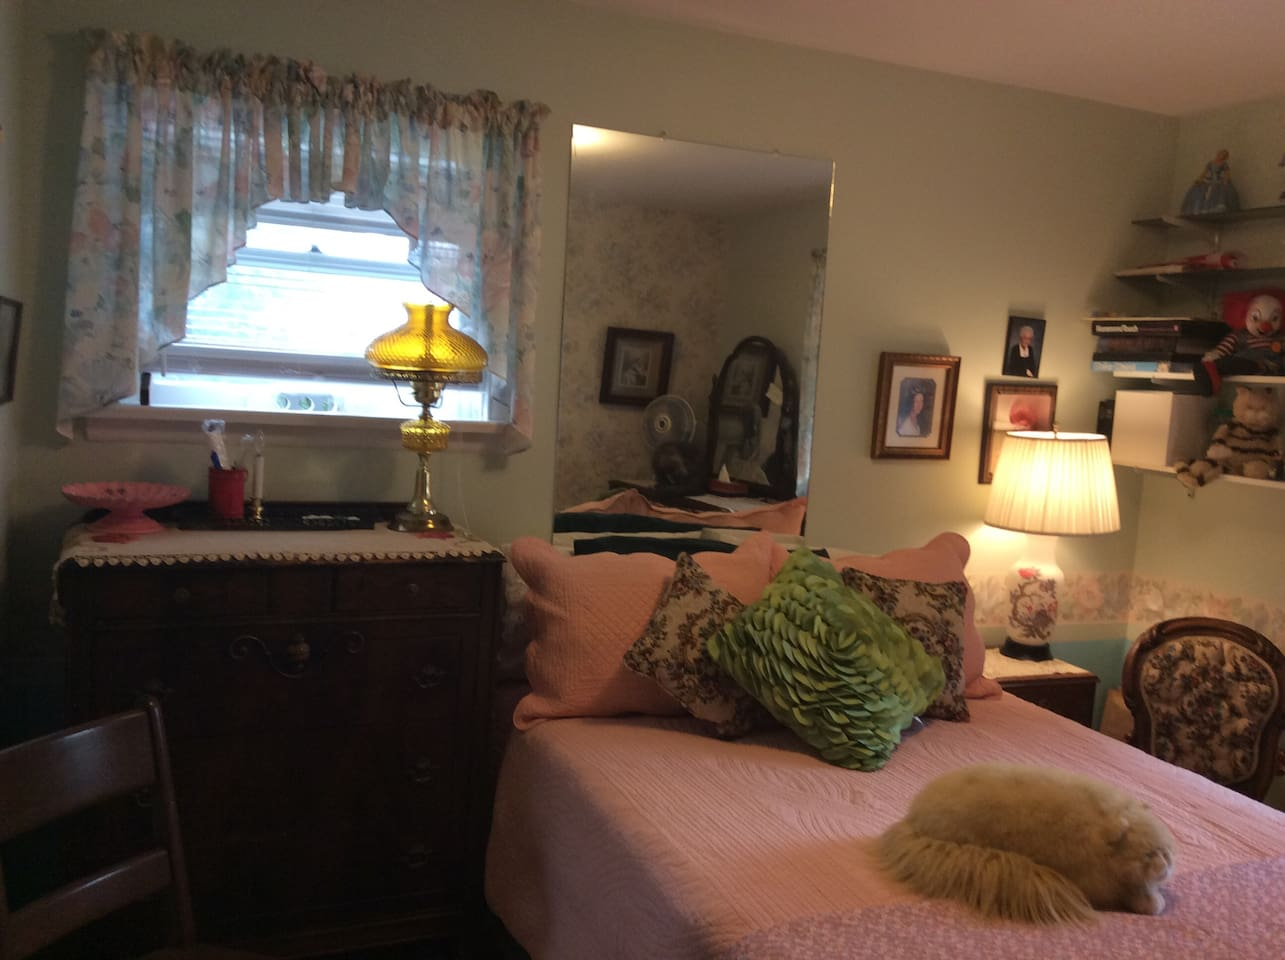 The double bed with antique dresser. Windows have room darkening blinds.   Bathroom is adjacent to the bedroom.